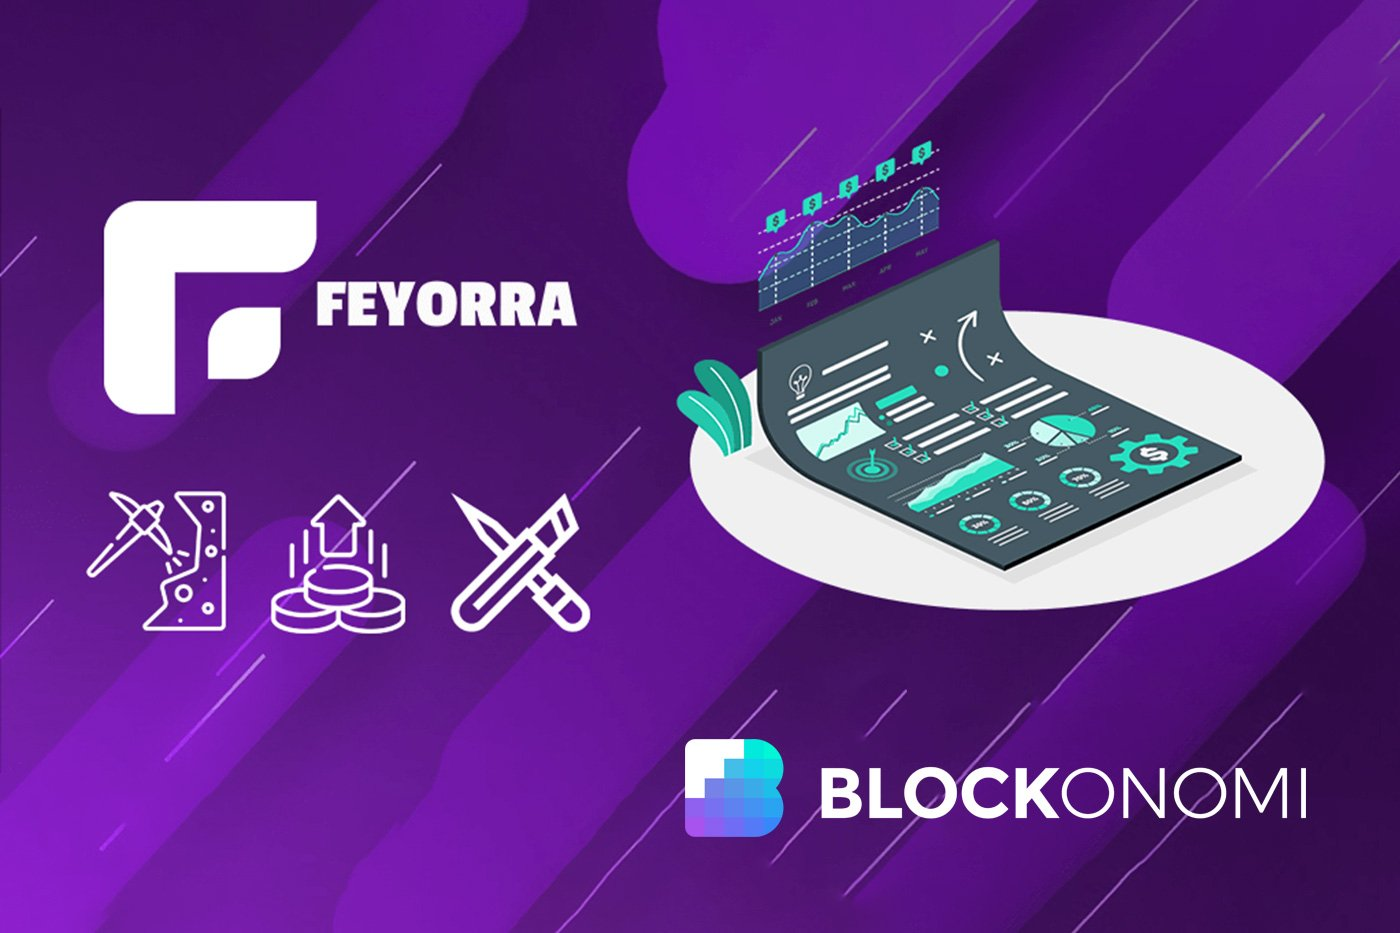 Step Up your Crypto Strategy with Faucet Pay: Get your Free Feyorra Tokens